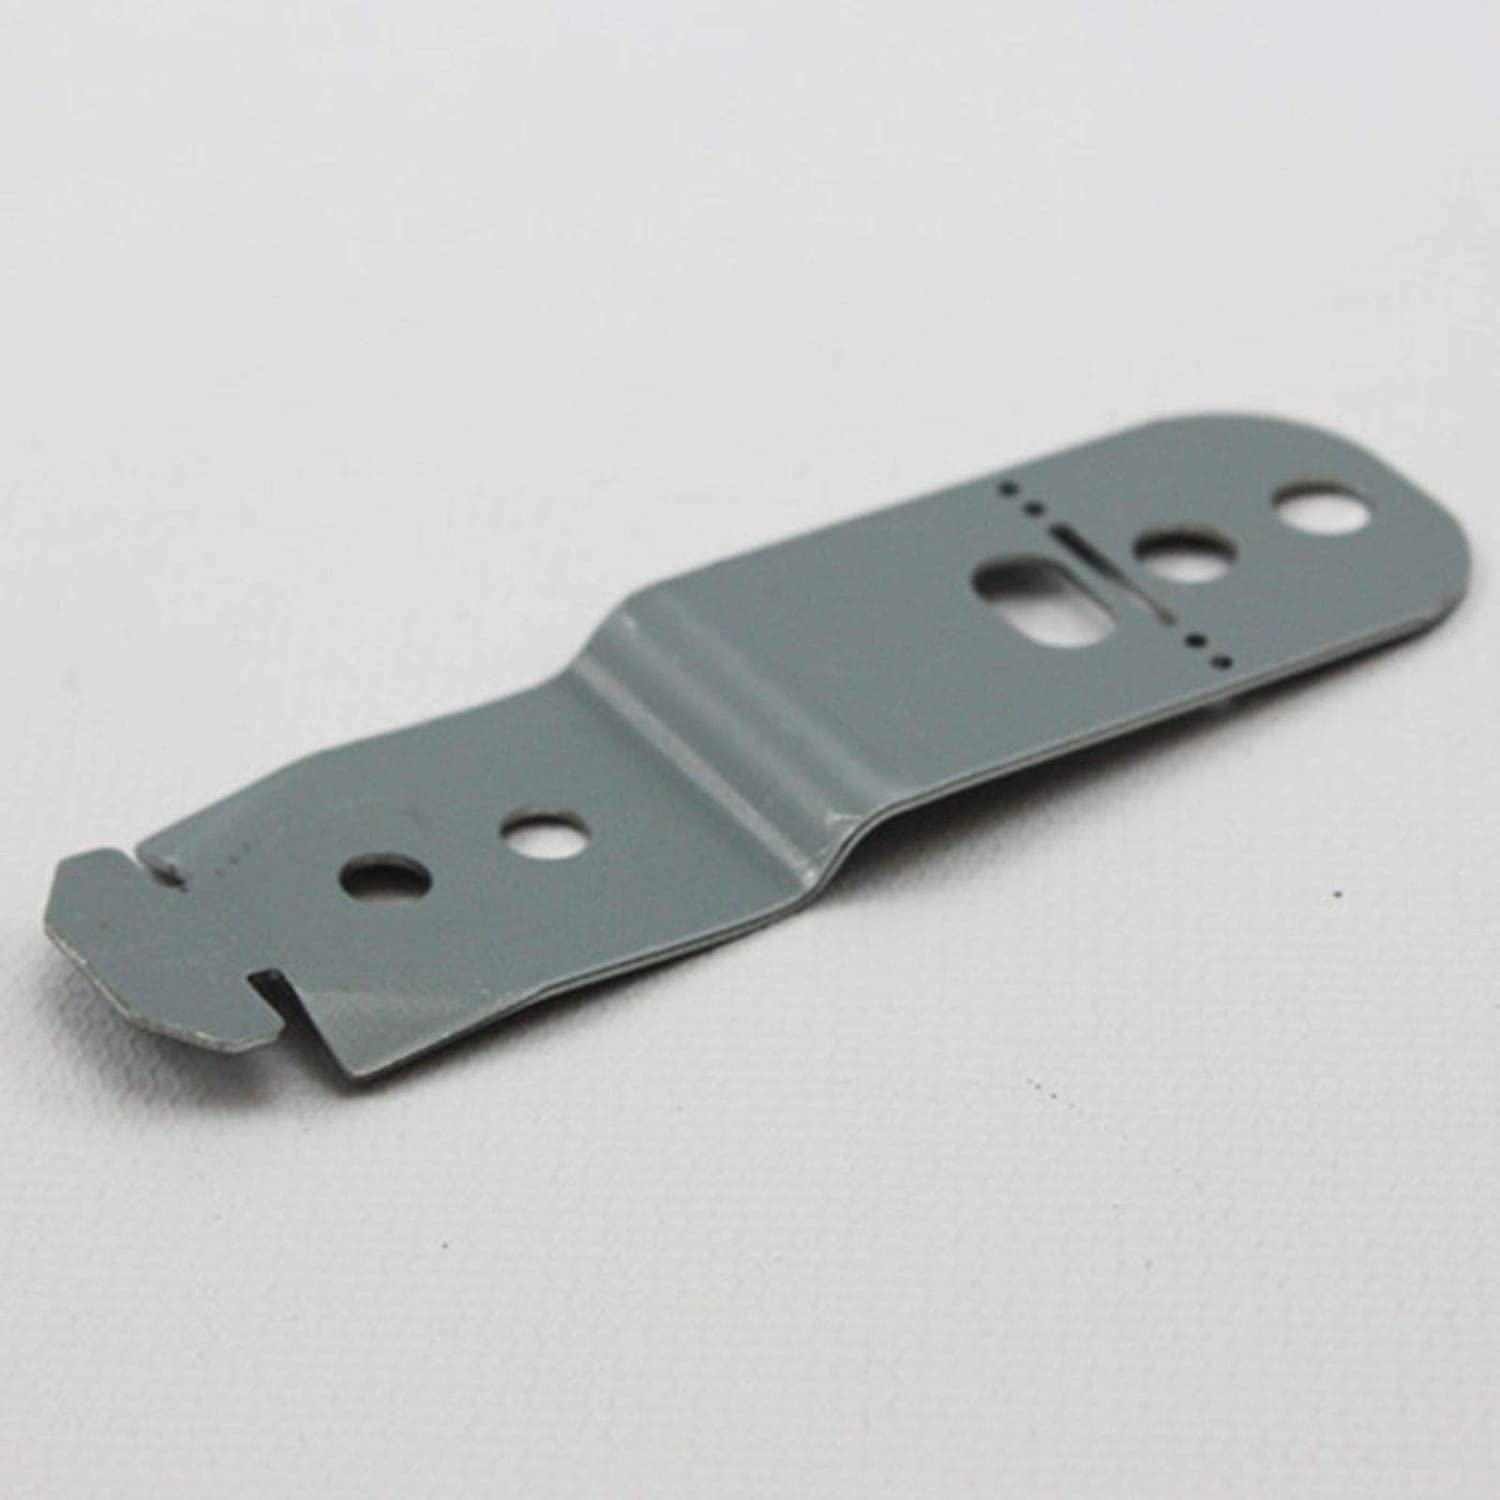 Mounting Bracket 619985 for Bosch 605007 00619985 00605007 1567804 AH3478789 AP4538351 EA3478789 PS3478789 PS8728568